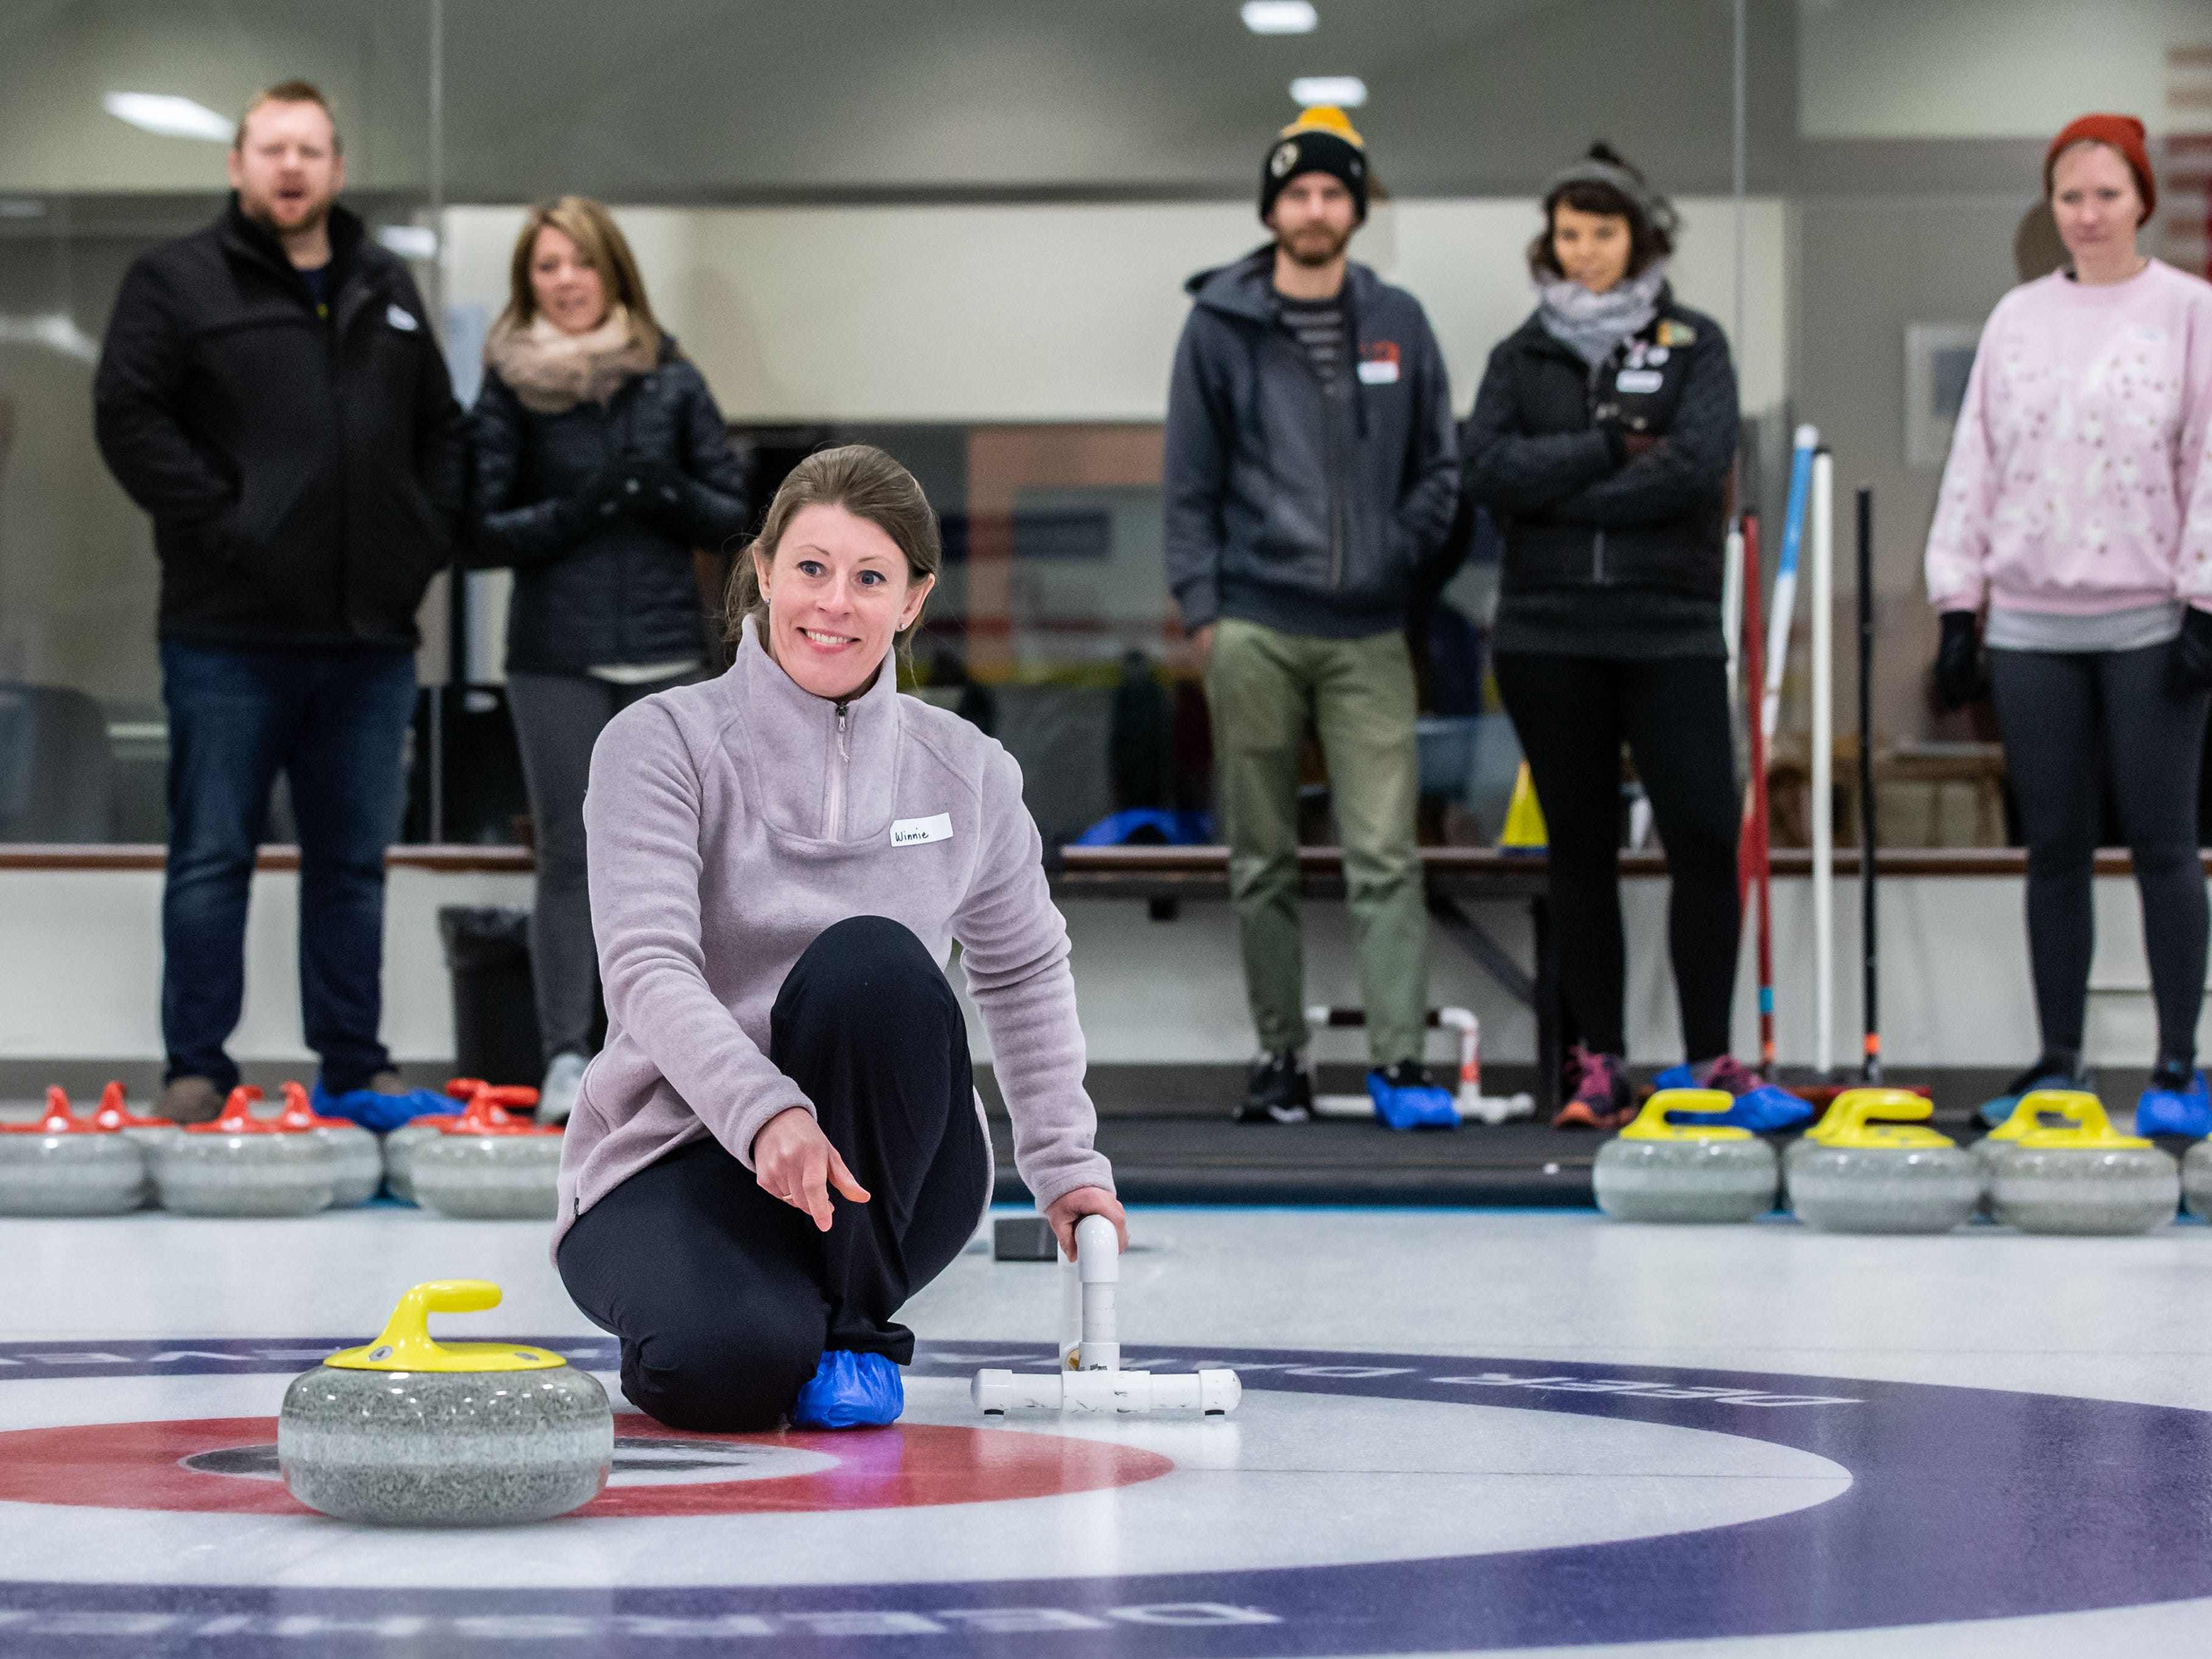 Winnie Sorensen of Mequon practices releasing a stone during the Learn to Curl program at the Milwaukee Curling Club in Cedarburg on Saturday, Dec. 29, 2018. The Milwaukee Curling Club was founded in 1845 and is the longest continually operating curling club in the United States.